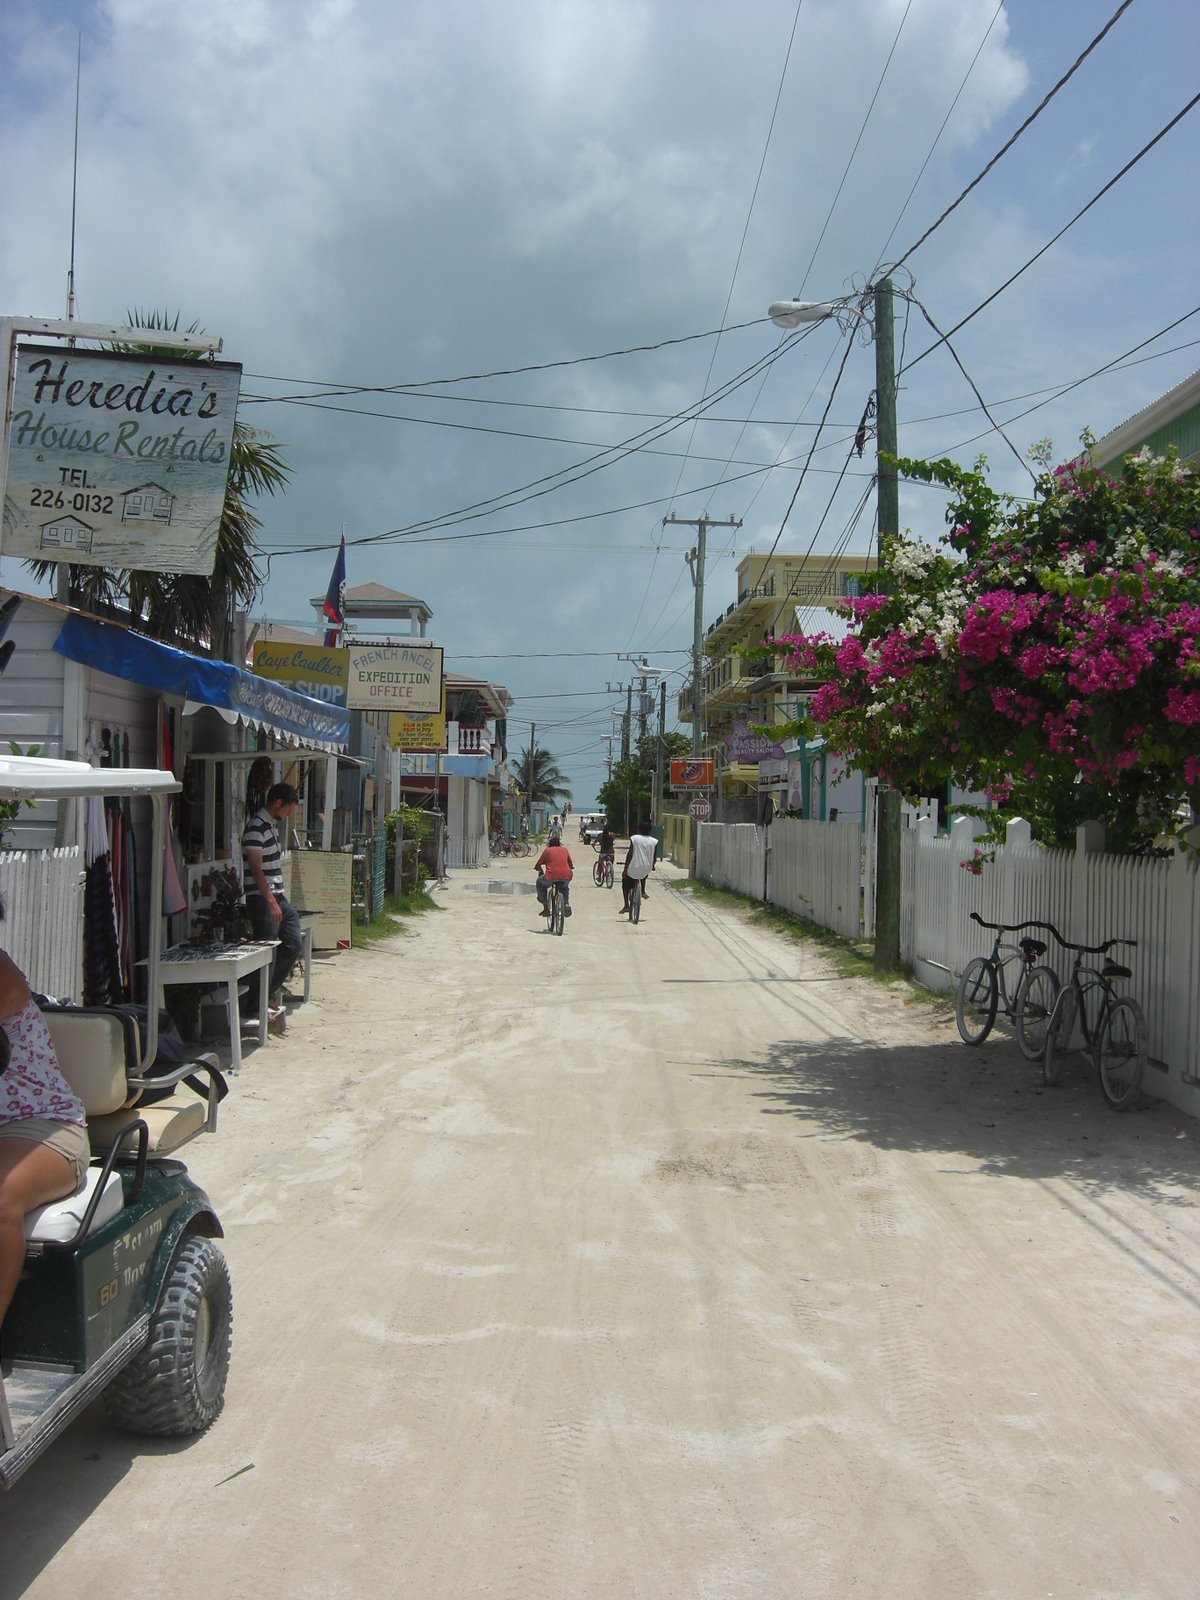 The main street - the island is mostly a small town, more buildings than you would expect for one in the middle of the Caribbean!